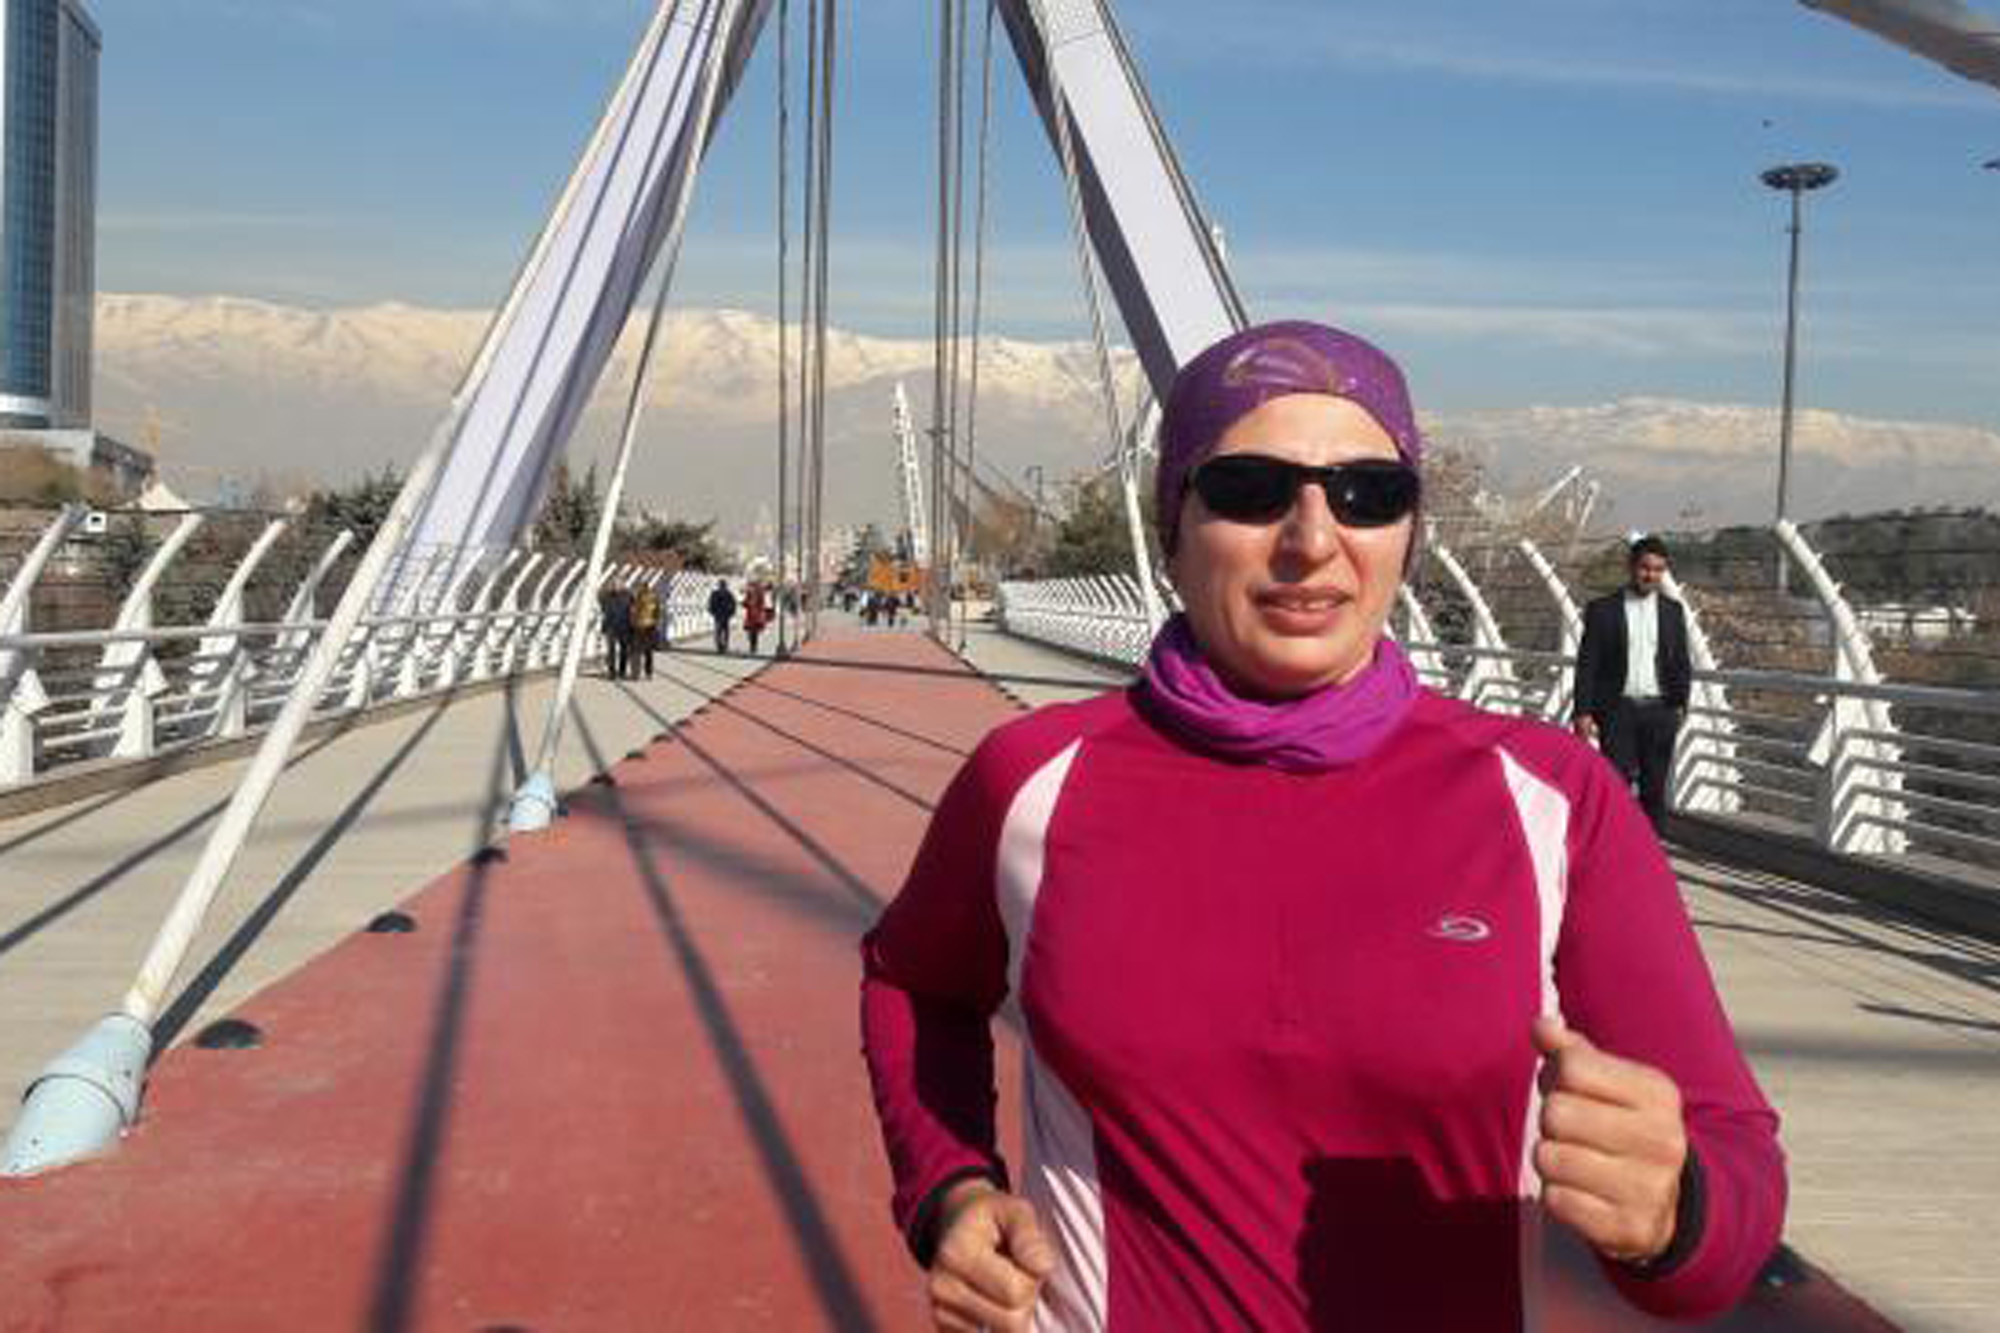 First woman to Run A Marathon In Iran